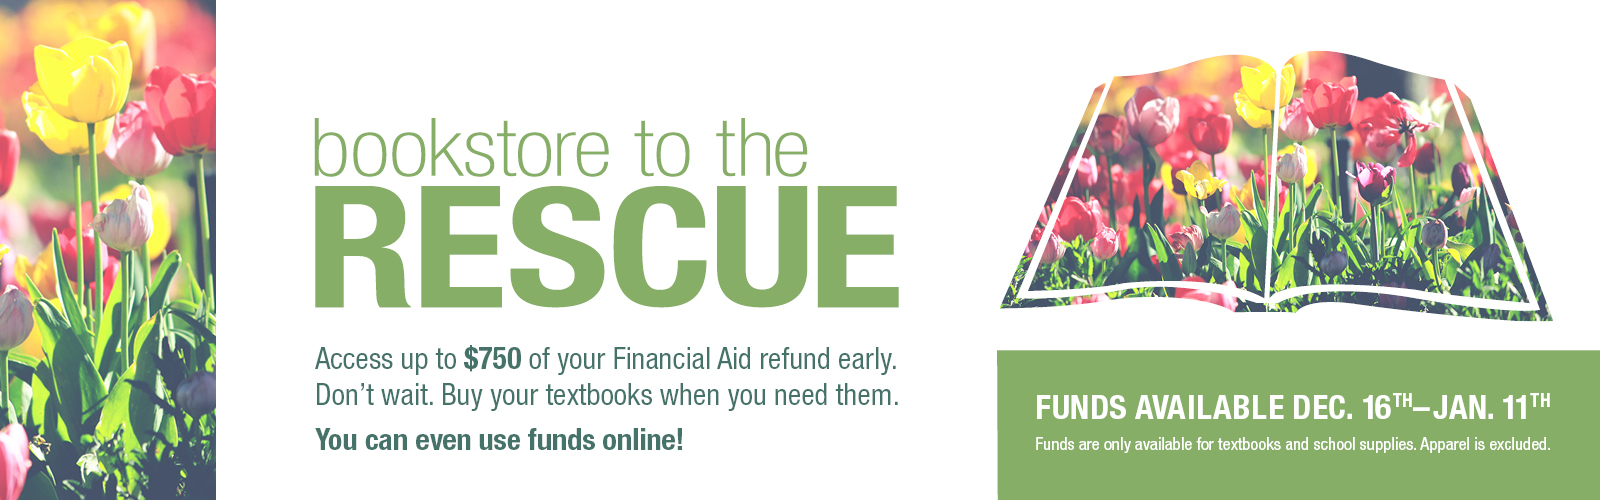 Bookstore to the Rescue: Funds available Dec. 16th - Jan. 11th